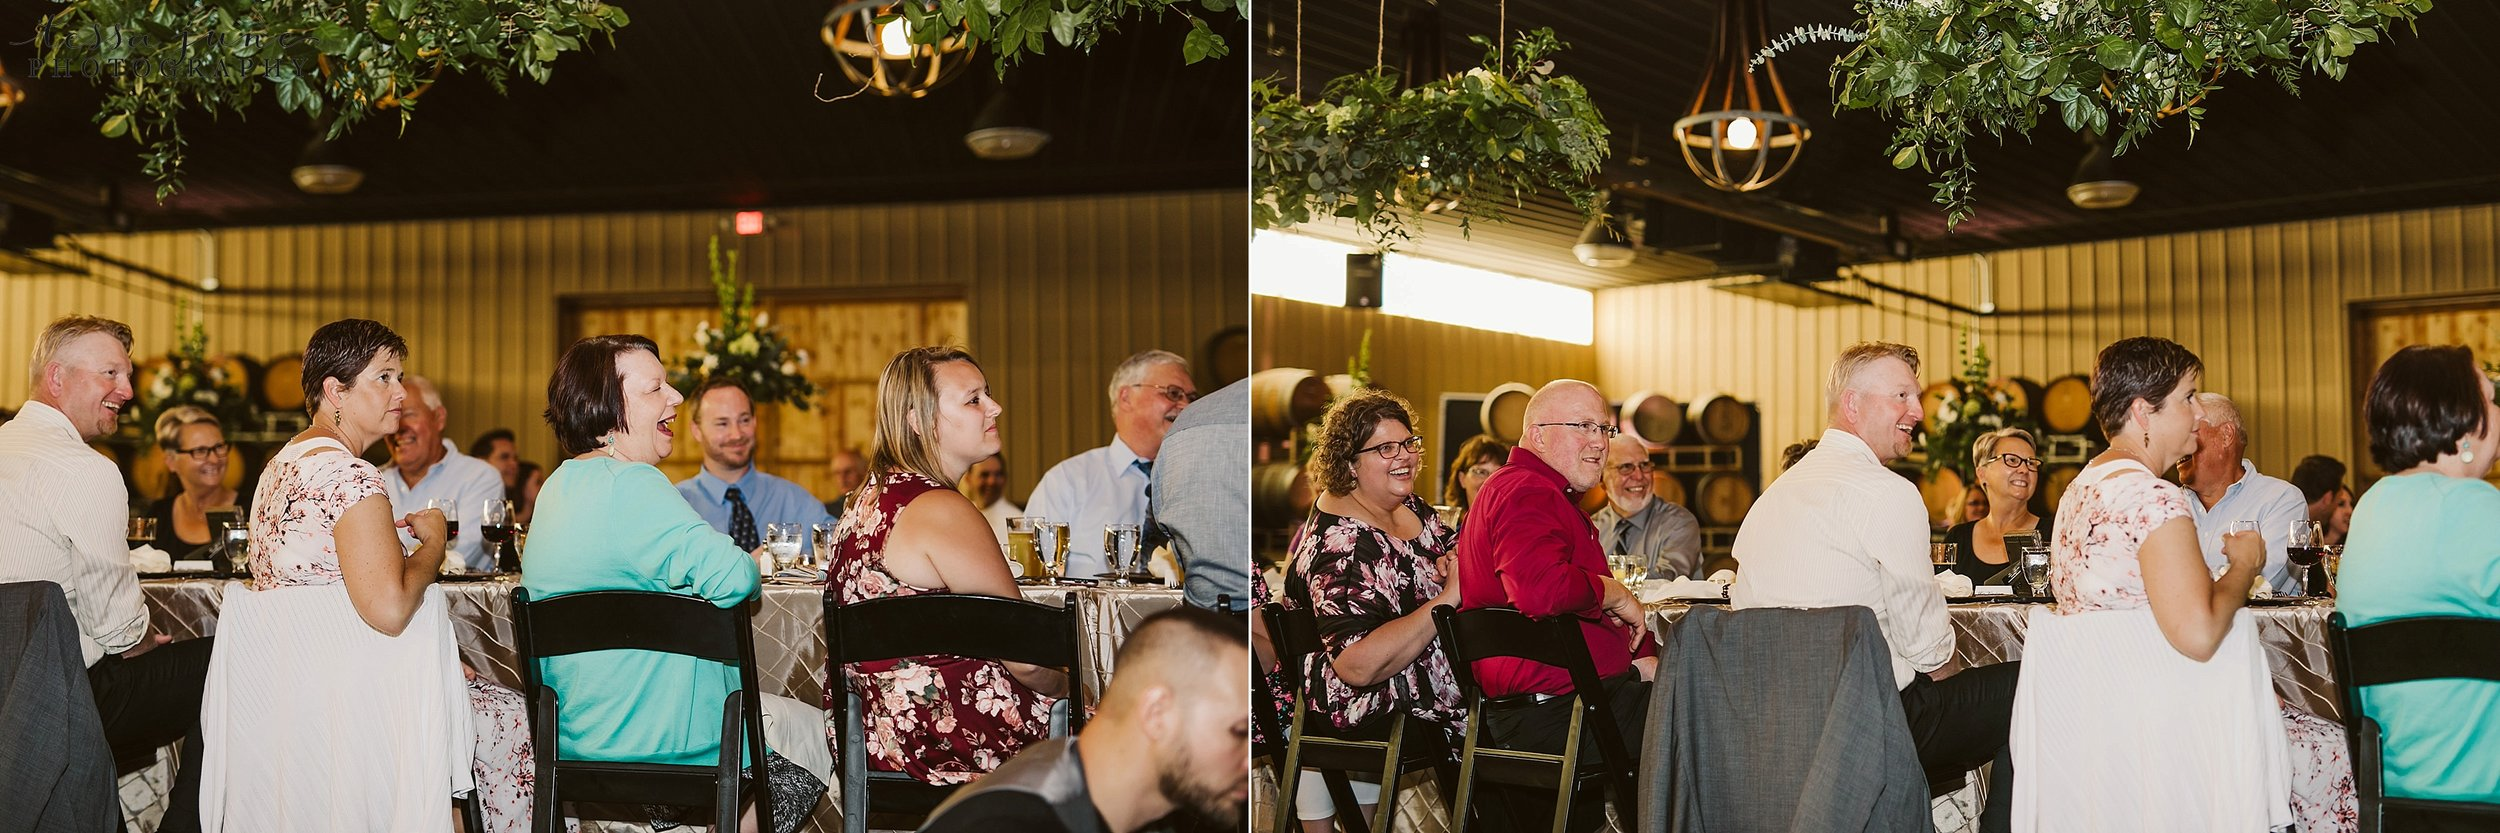 carlos-creek-winery-wedding-alexandria-minnesota-glam-elegant-floral-118.jpg